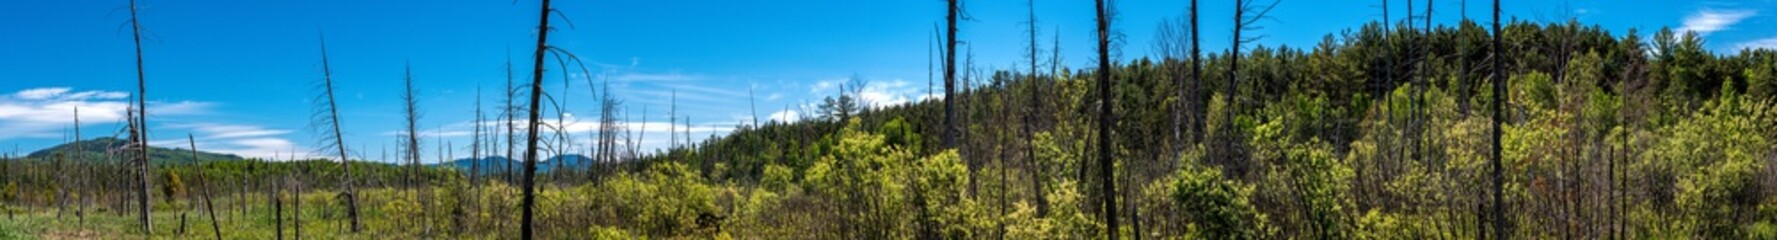 Panoramic view of a forest in the Adirondacks Mountains